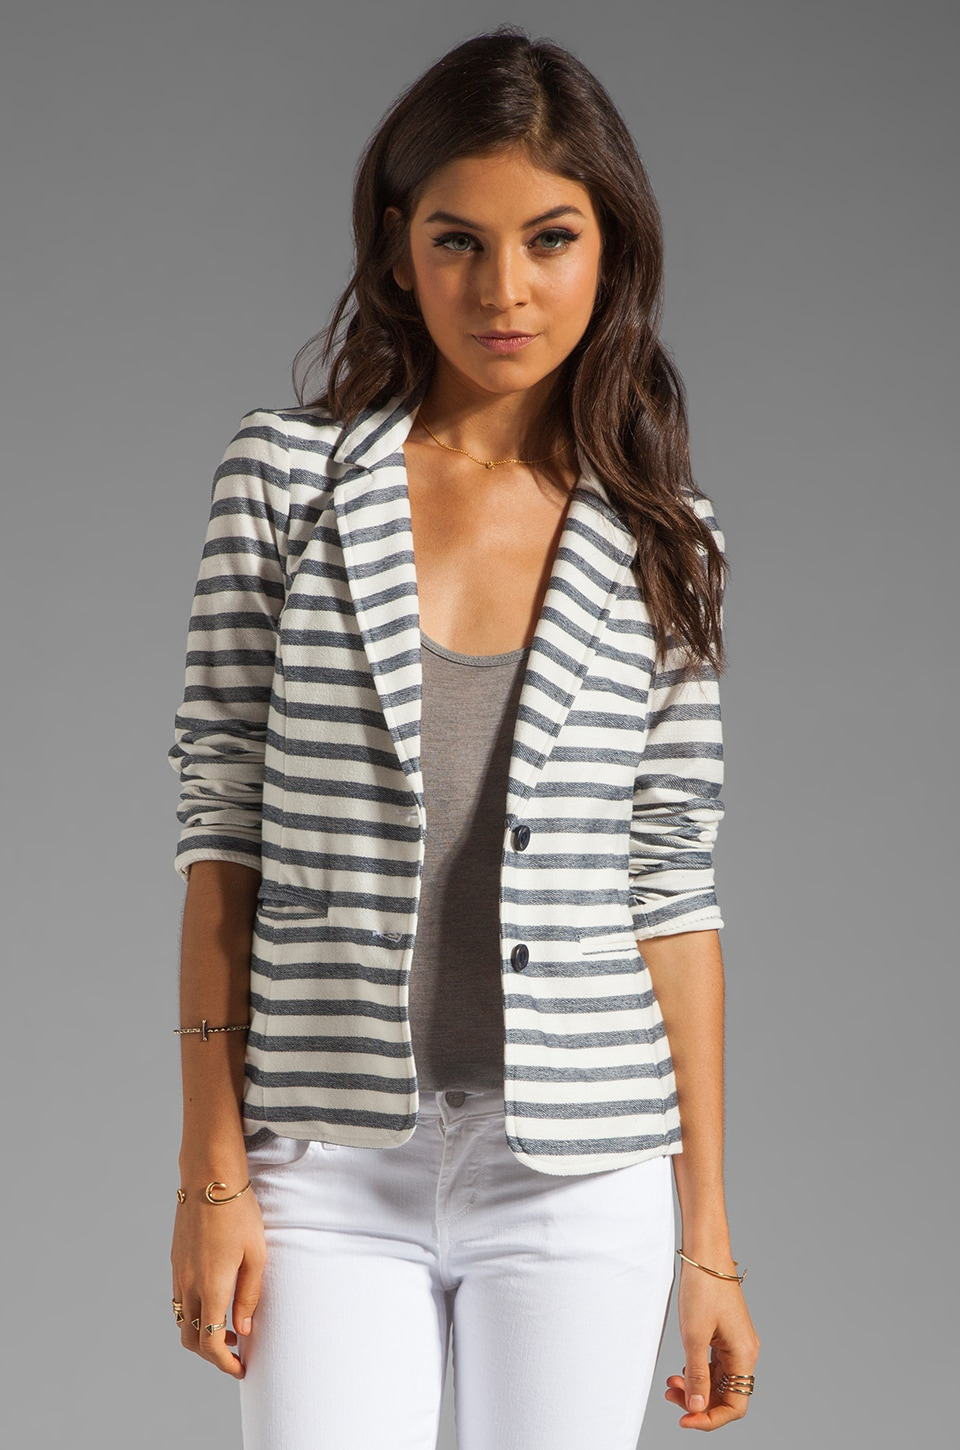 Splendid Nantucket Stripe Blazer in Pearl/Navy